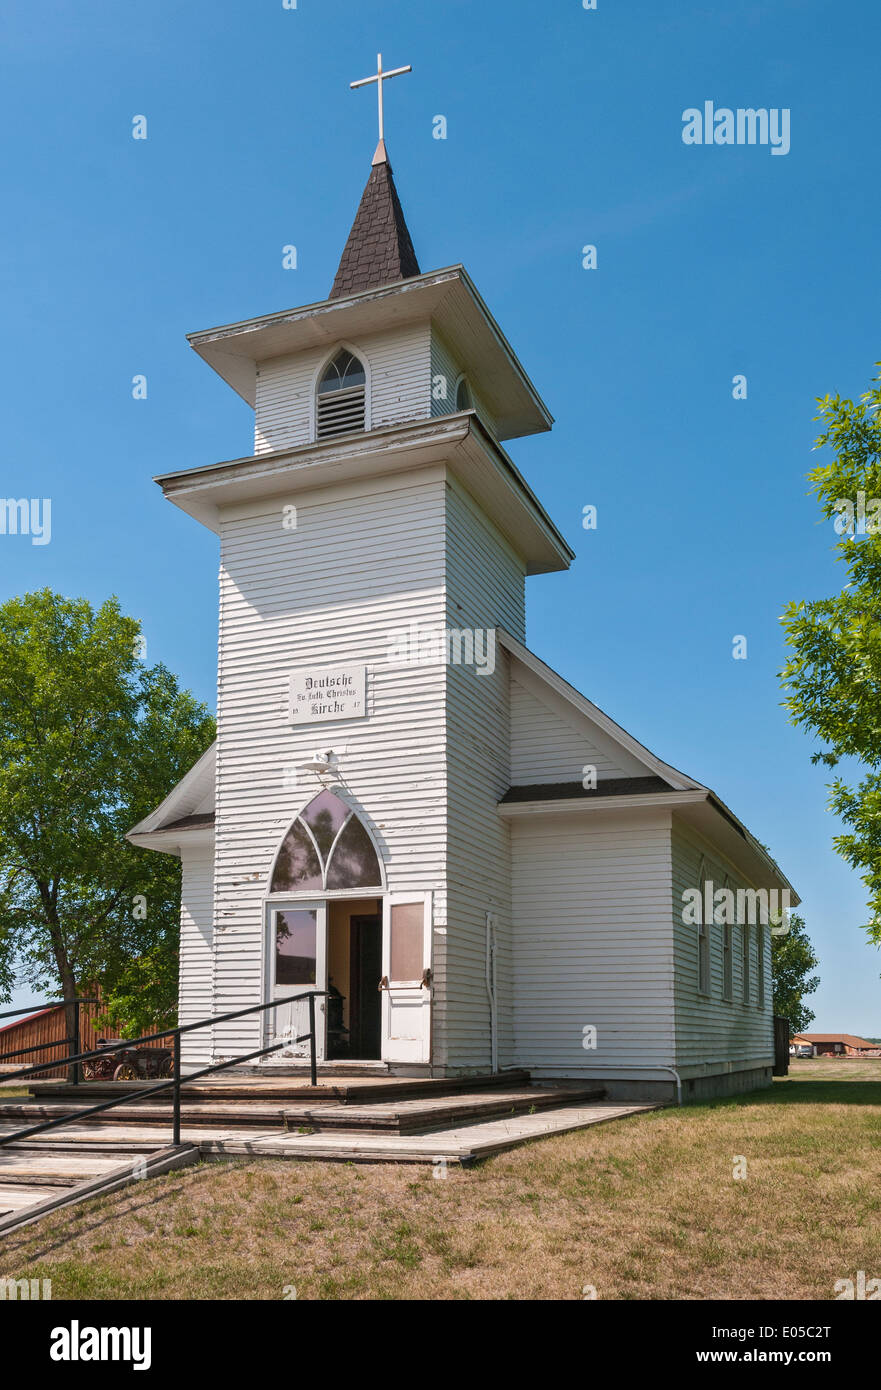 Montana, Hardin, Big Horn County Historical Museum, Christ Evangelical Lutheran Church built 1917 by German settlers - Stock Image